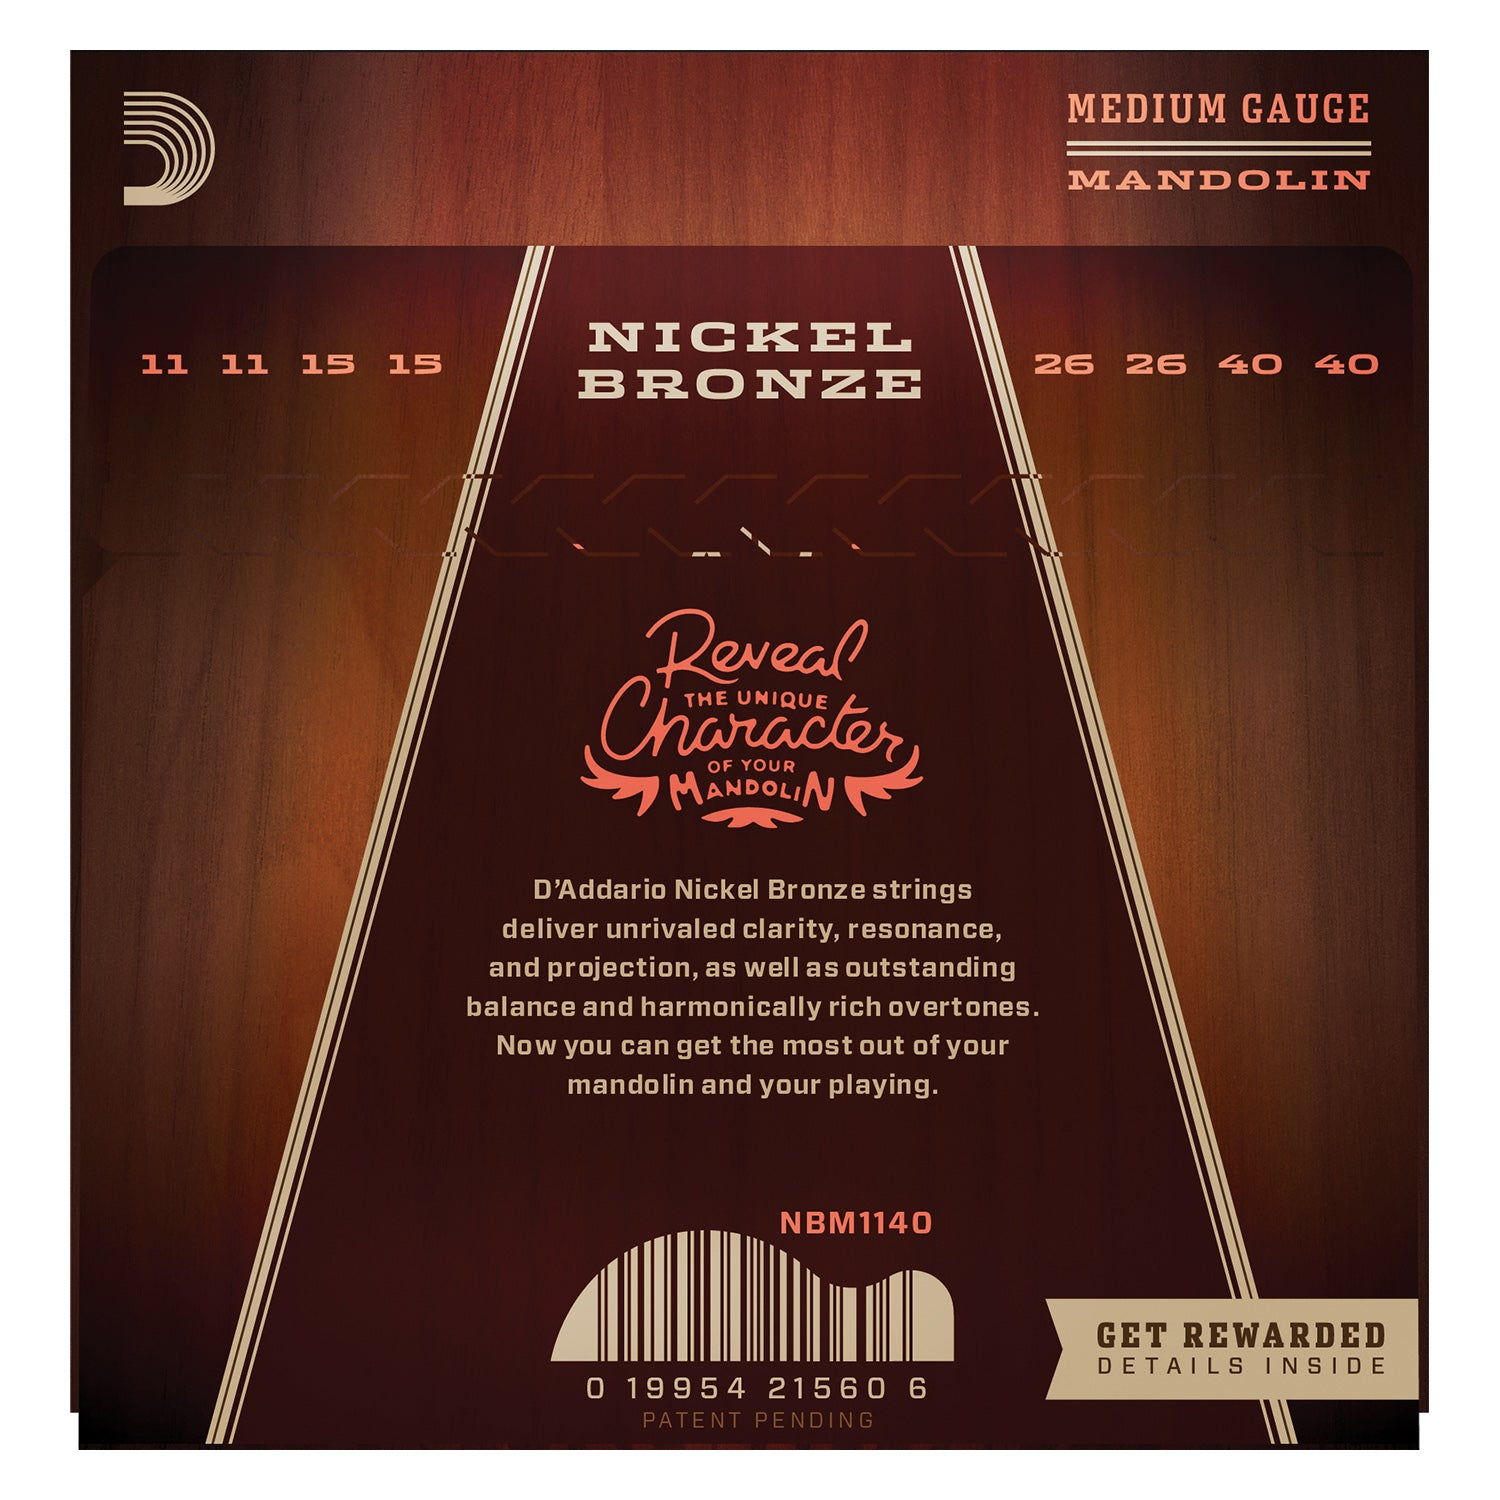 D'Addario NBM1140 Nickel Bronze Mandolin Strings, Medium, 11-40